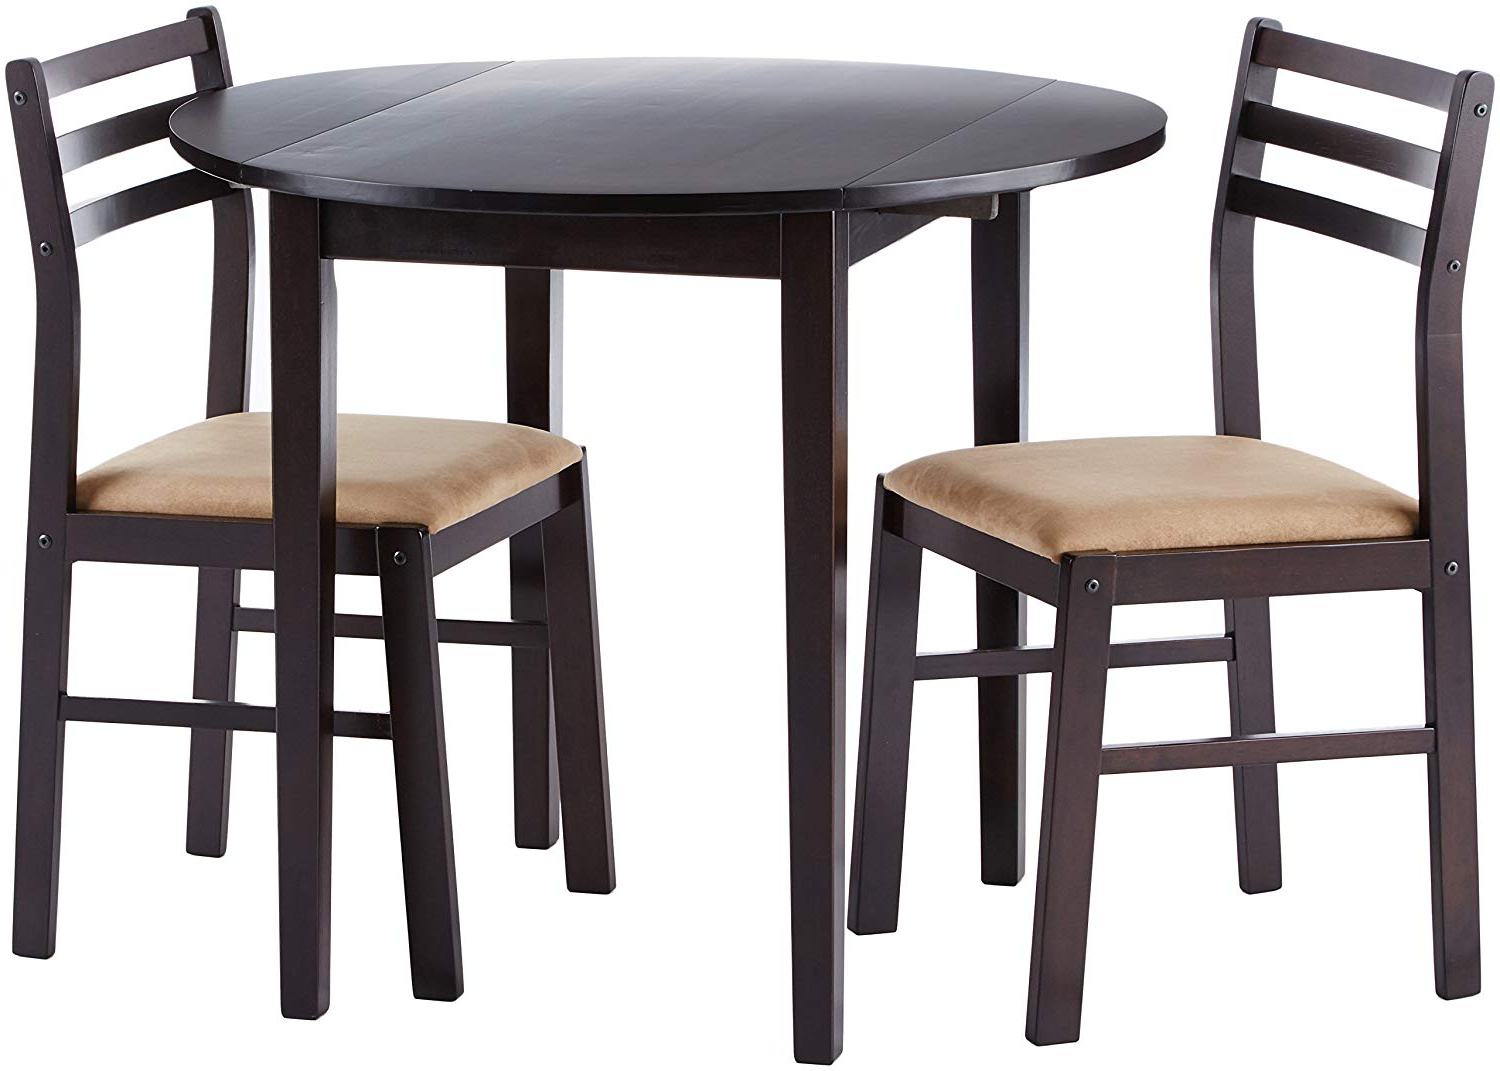 Newest Baillie 3 Piece Dining Sets In Coaster Home Furnishings 3 Piece Dining Set With Drop Leaf Cappuccino And  Tan (View 14 of 20)